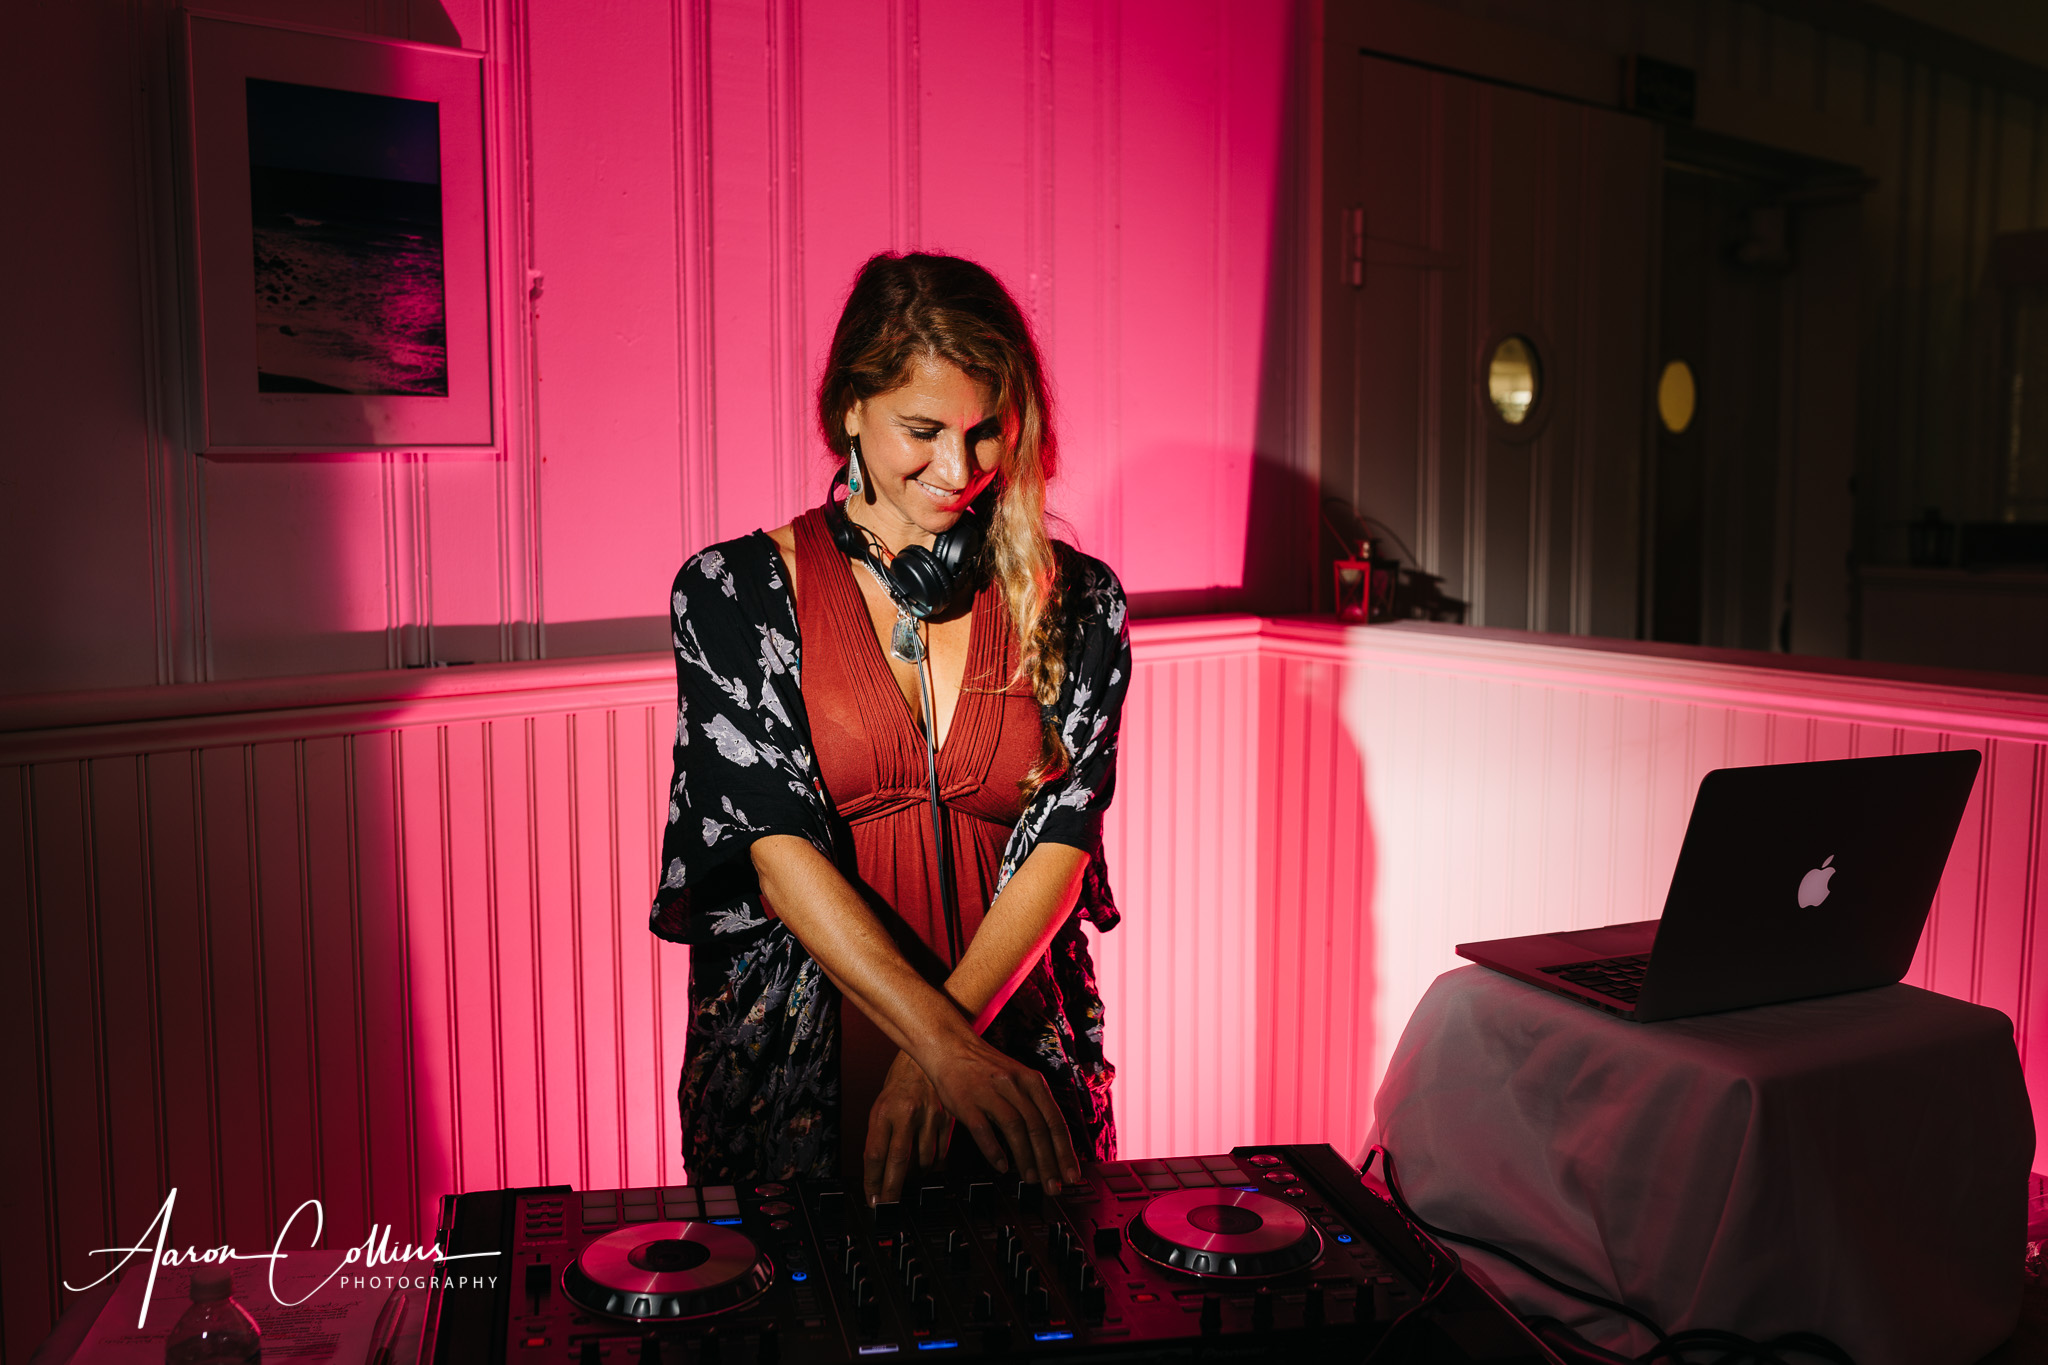 DJ Danielle C Duffy spinning the music at a wedding at Block Island Maritime Institute.